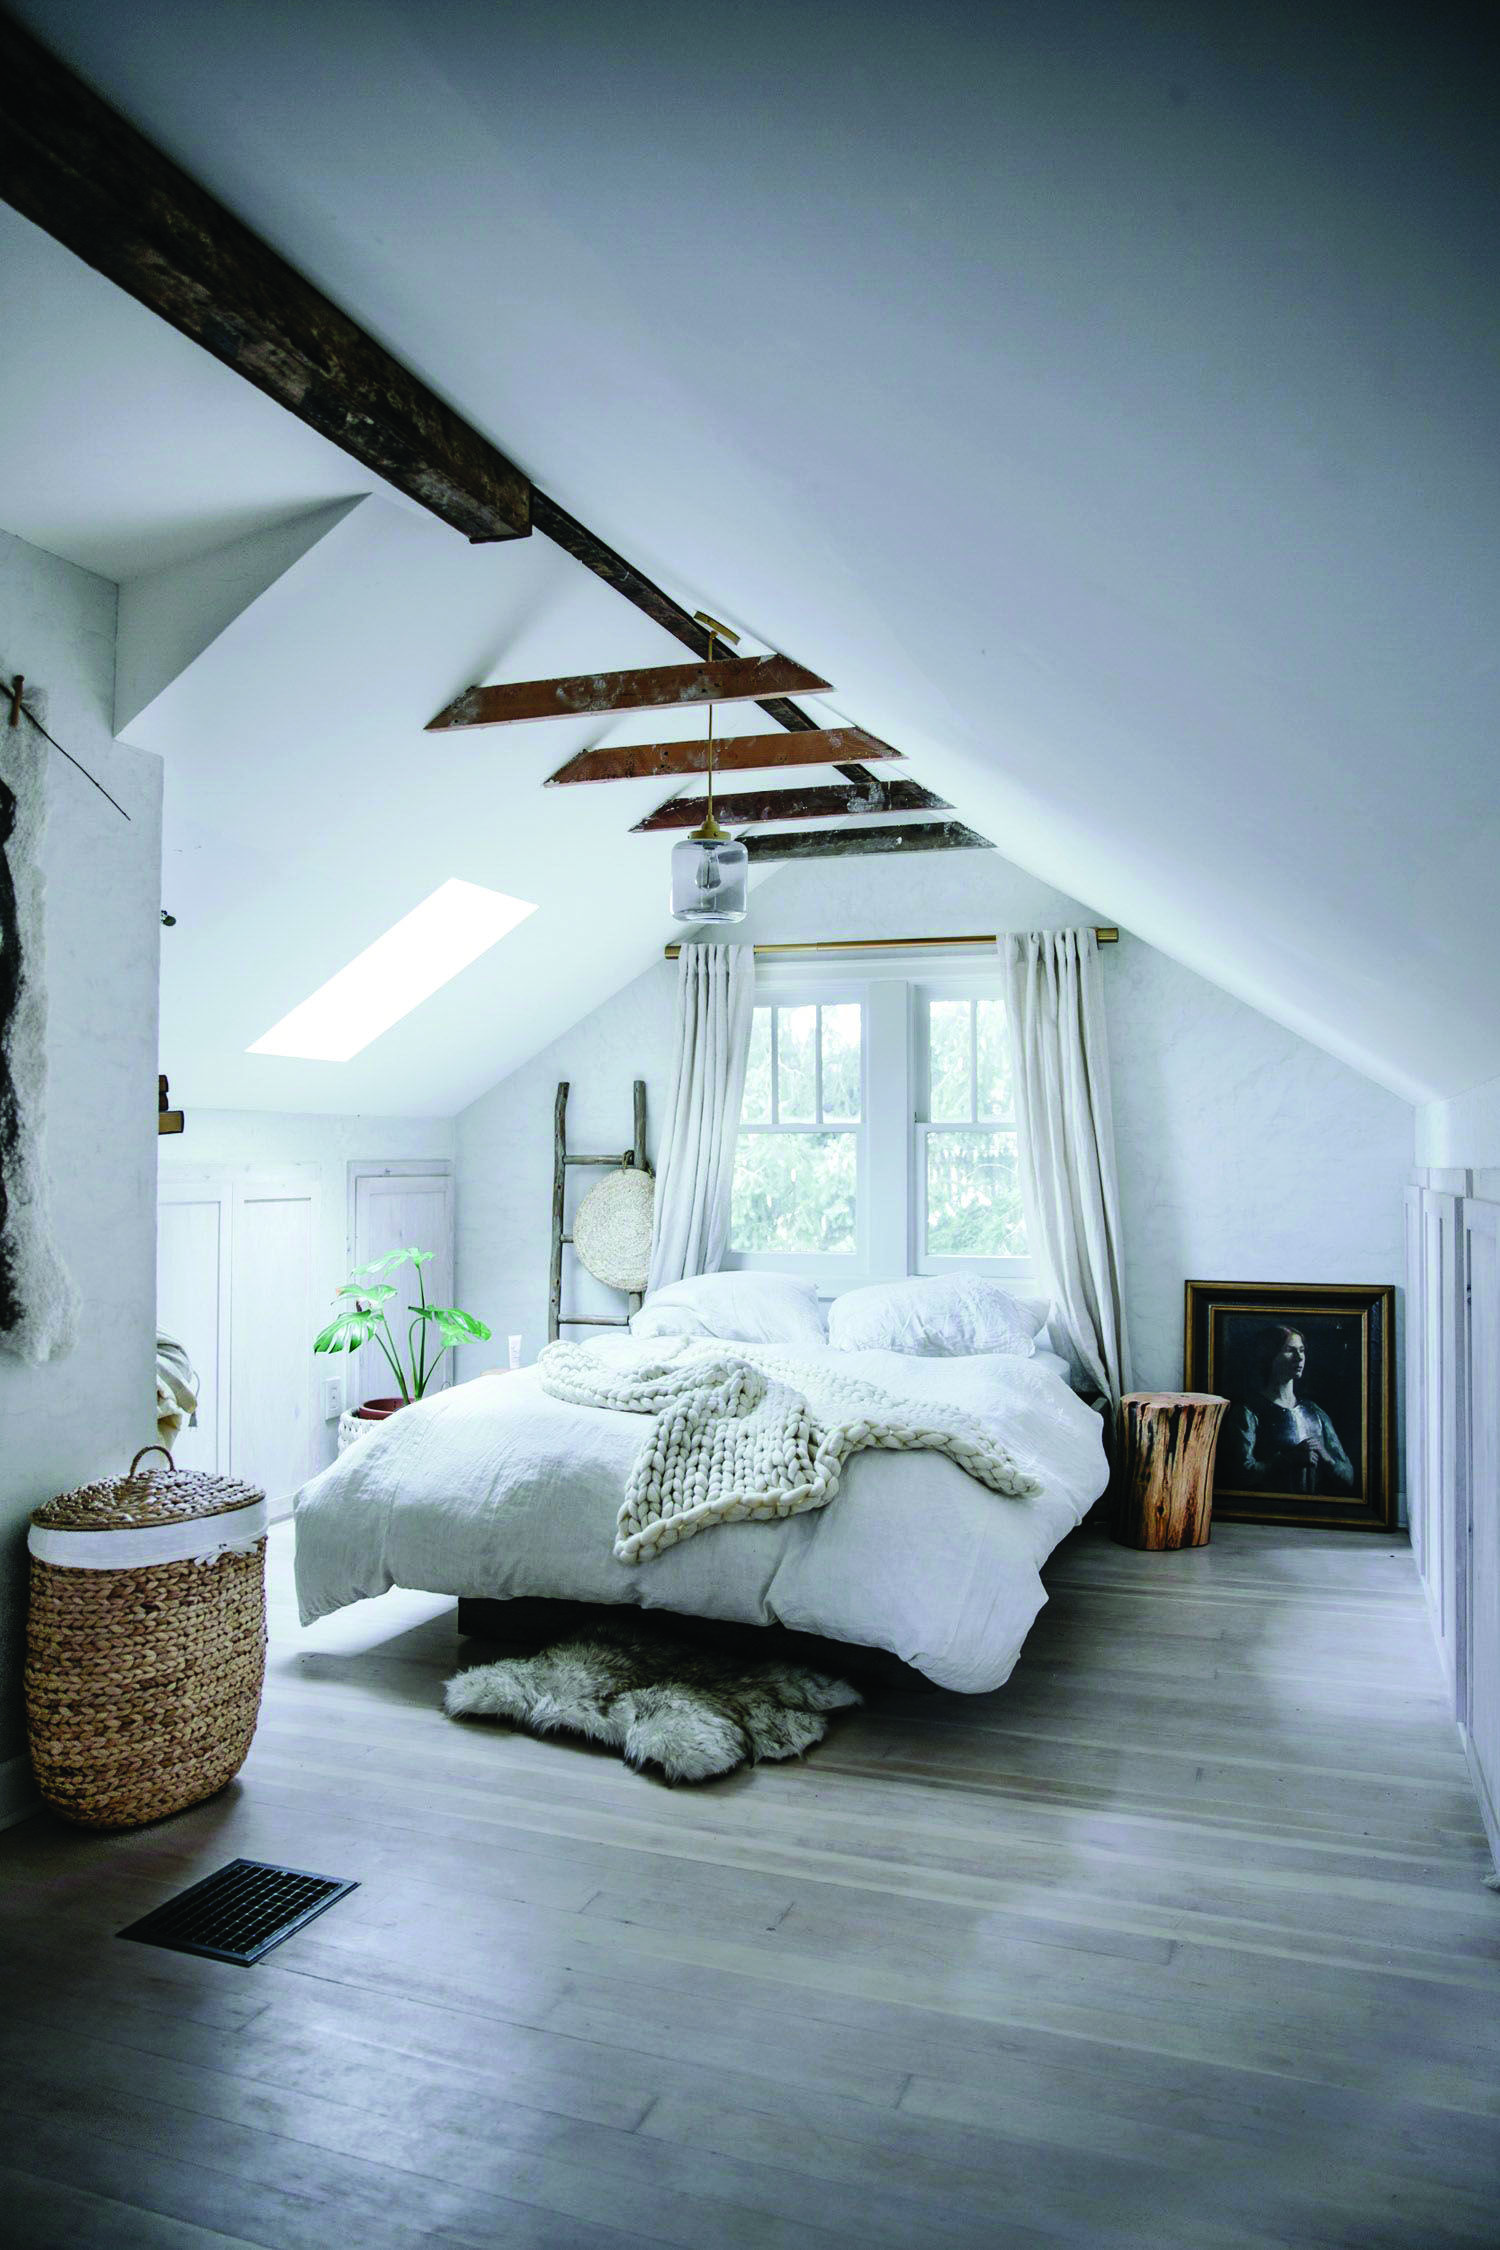 Rustic Bedroom Ideas Attic Bedroom Small Modern Rustic Bedrooms